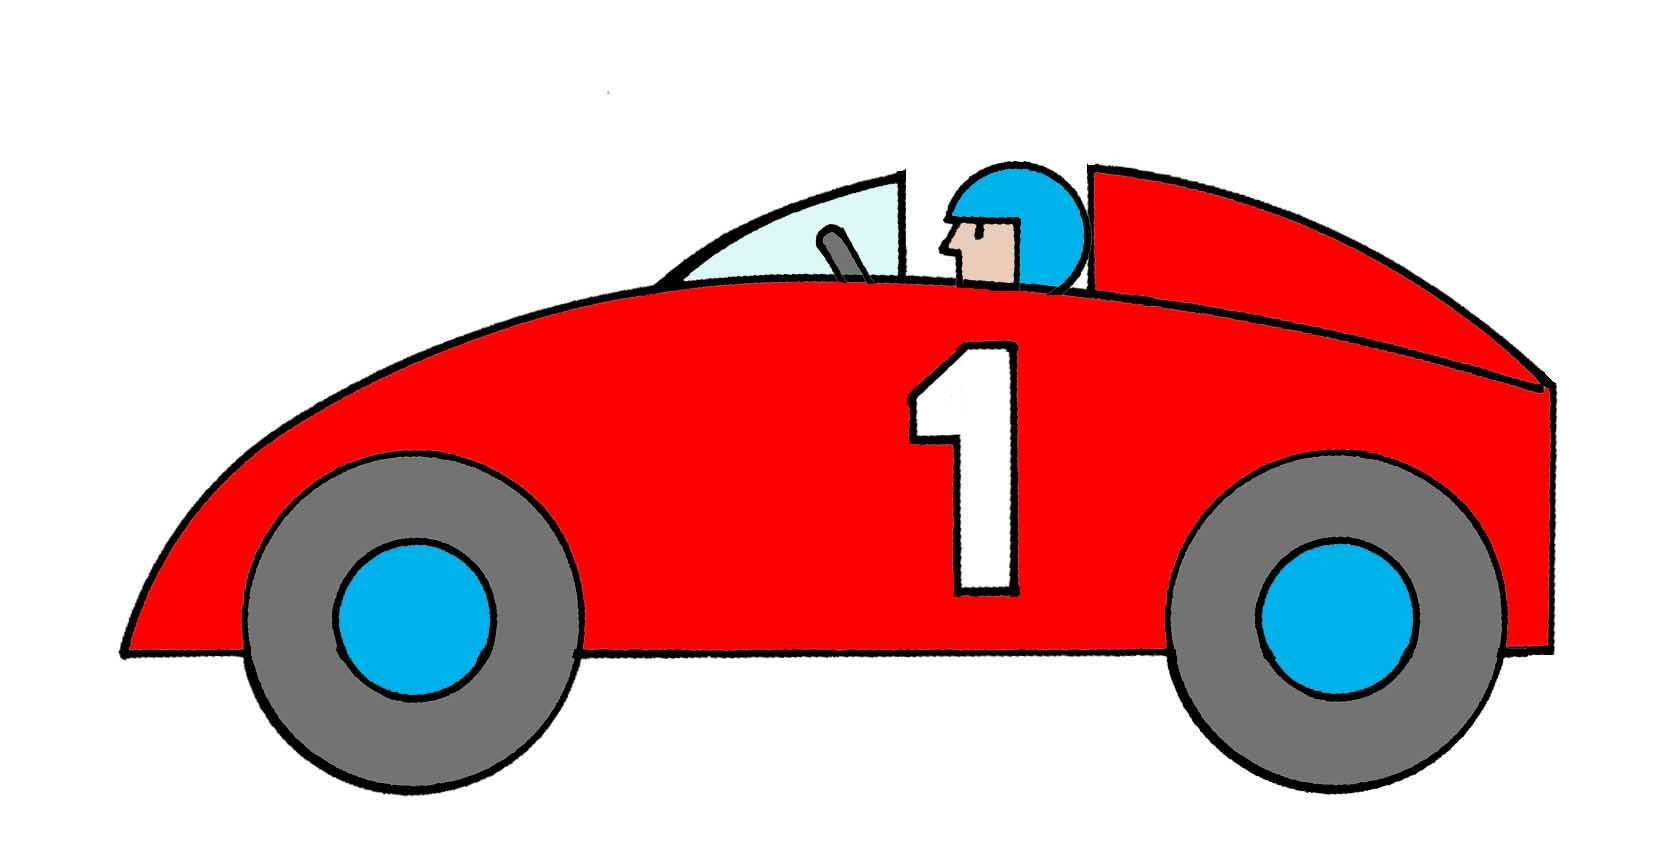 2 cars racing clipart picture freeuse Animated Race Car Clipart | Free download best Animated Race Car ... picture freeuse